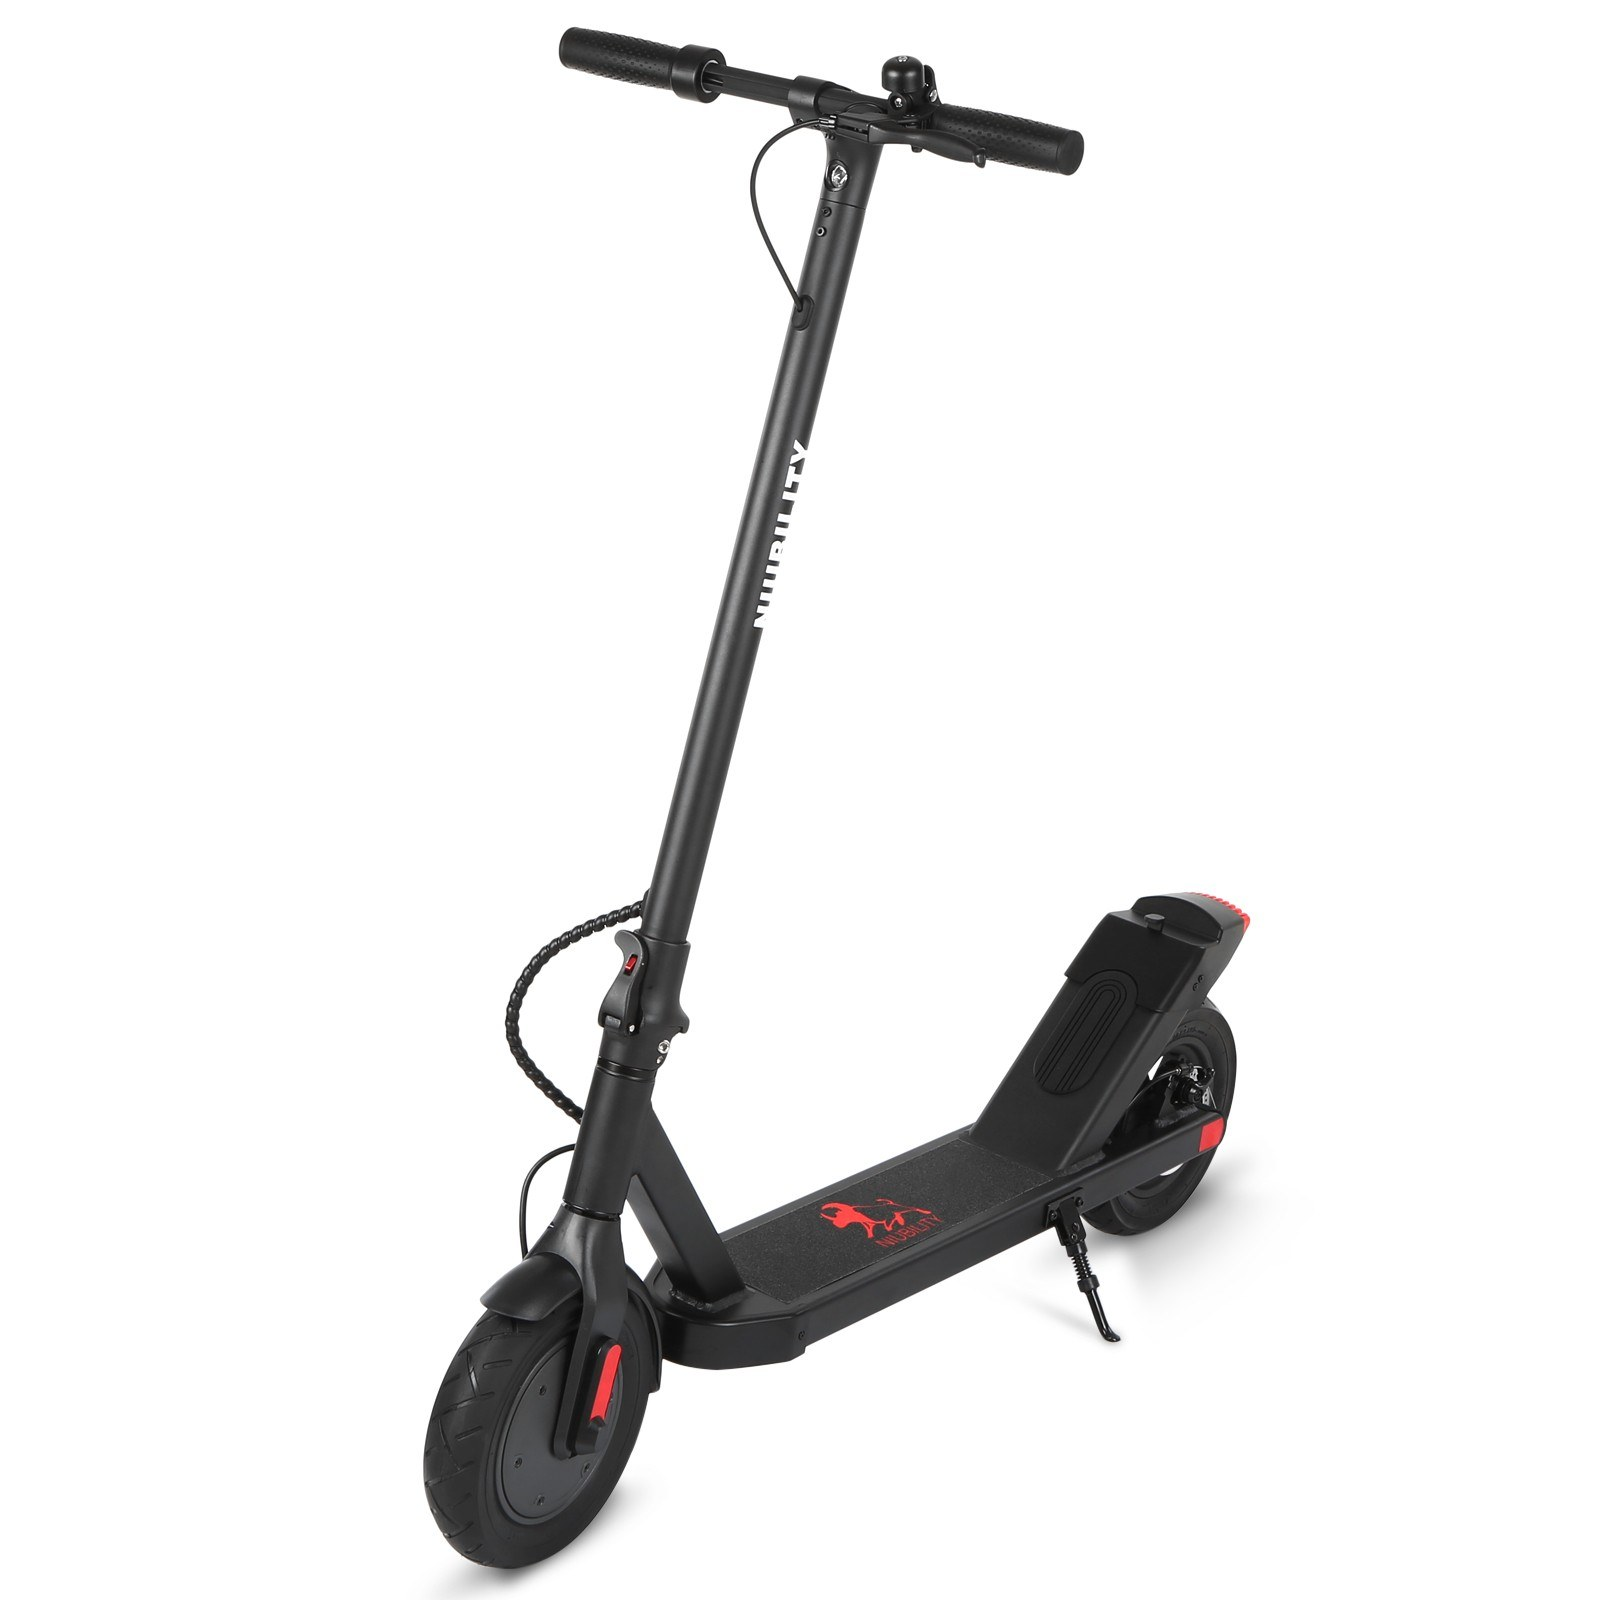 Nuibility N2 Two Wheel Electric Scooter